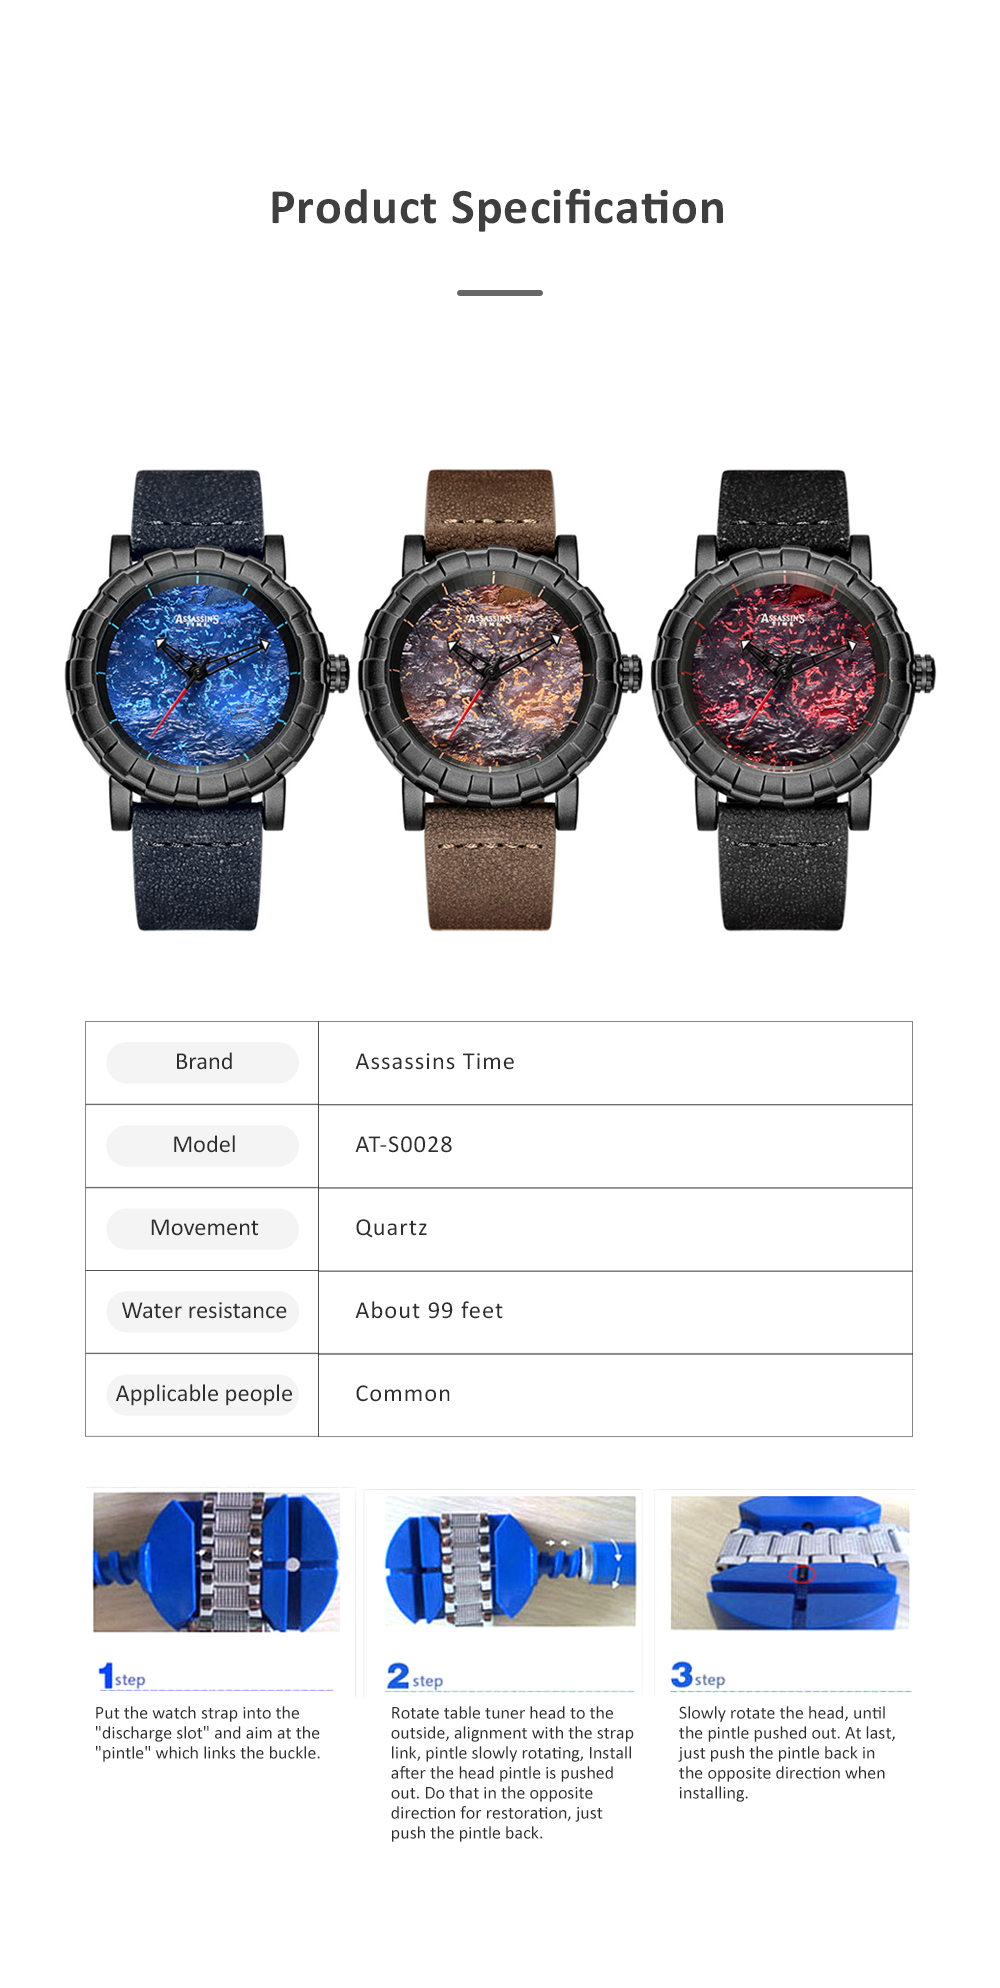 Burning Fire Creative Waterproof Electronic Watch for Men Casual with Quartz Movement and Adjustable Leather Strap 6